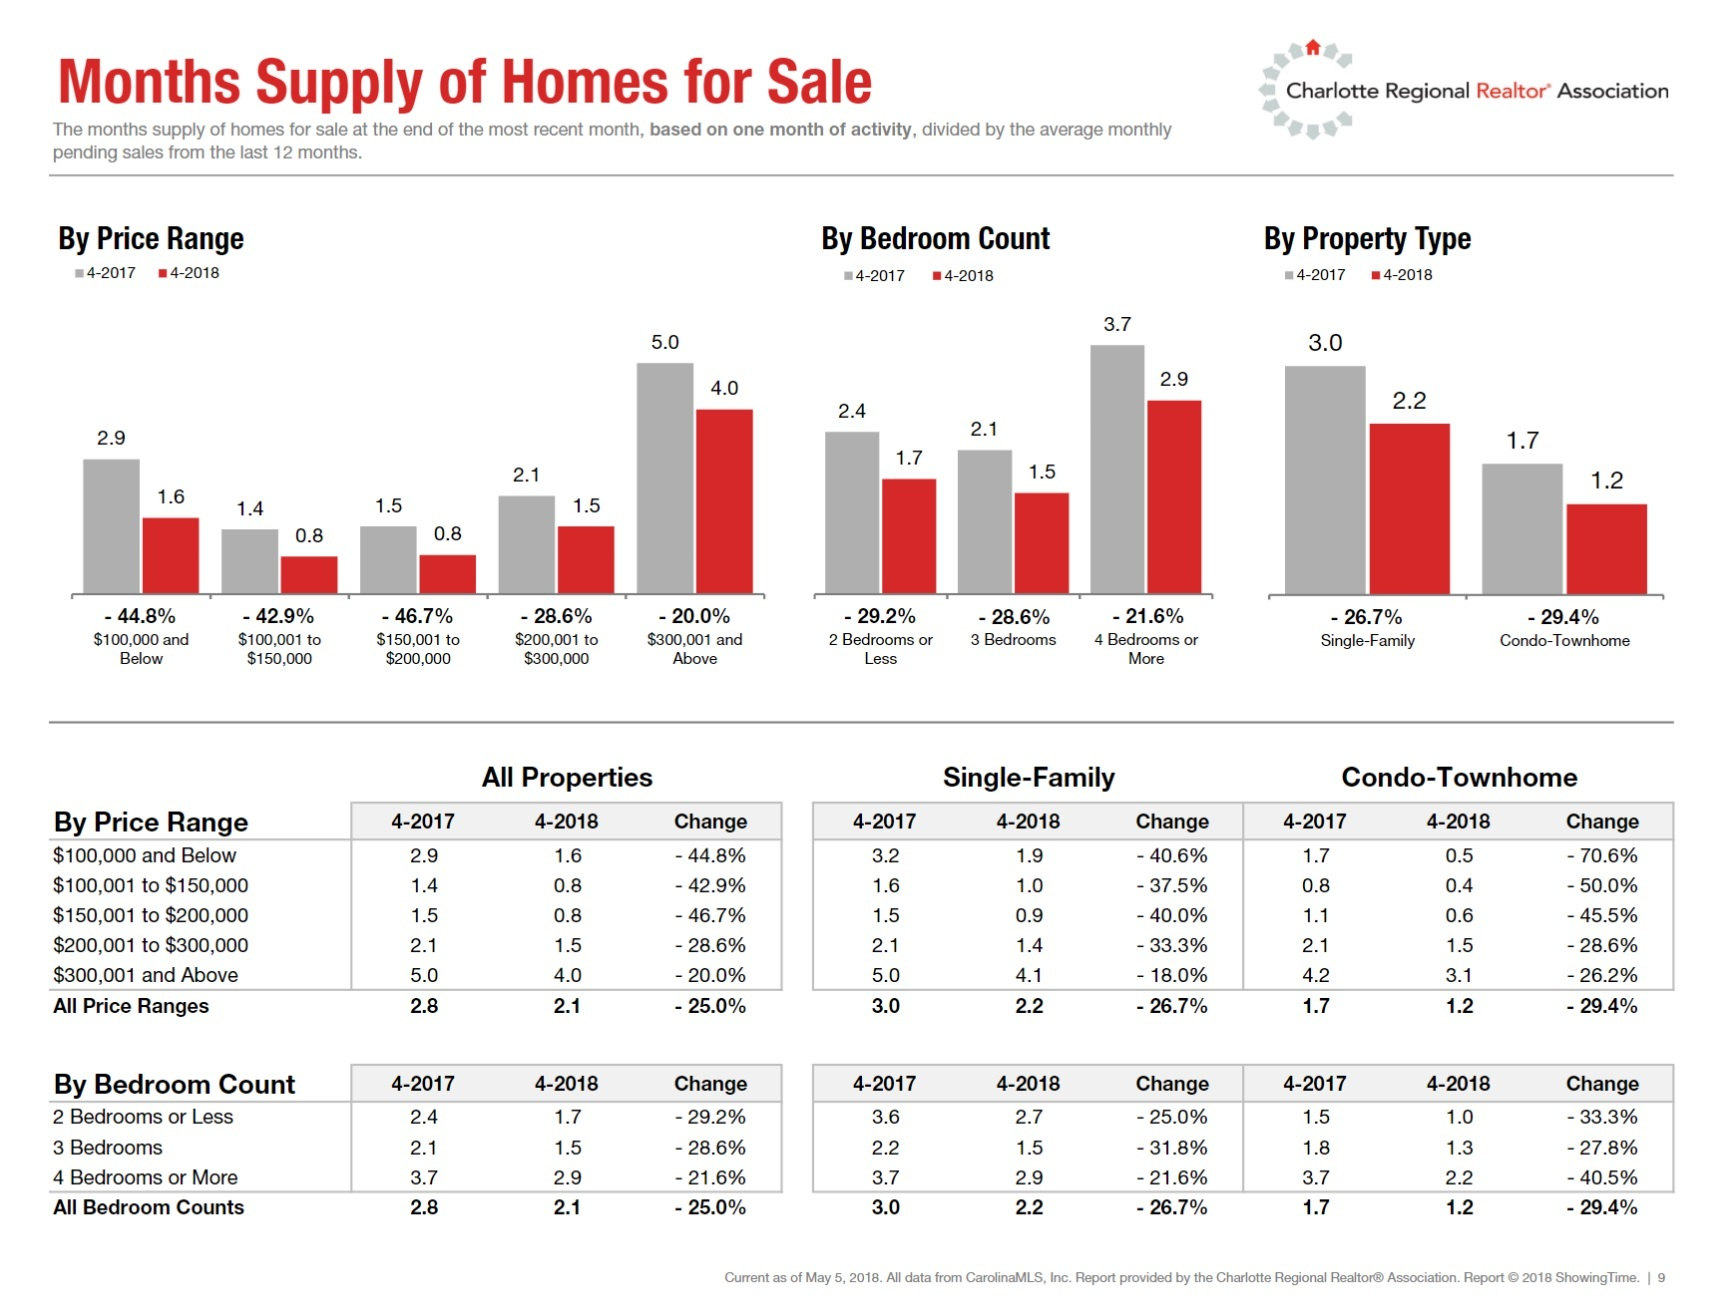 Charlotte Region Months Supply Of Homes April 2018